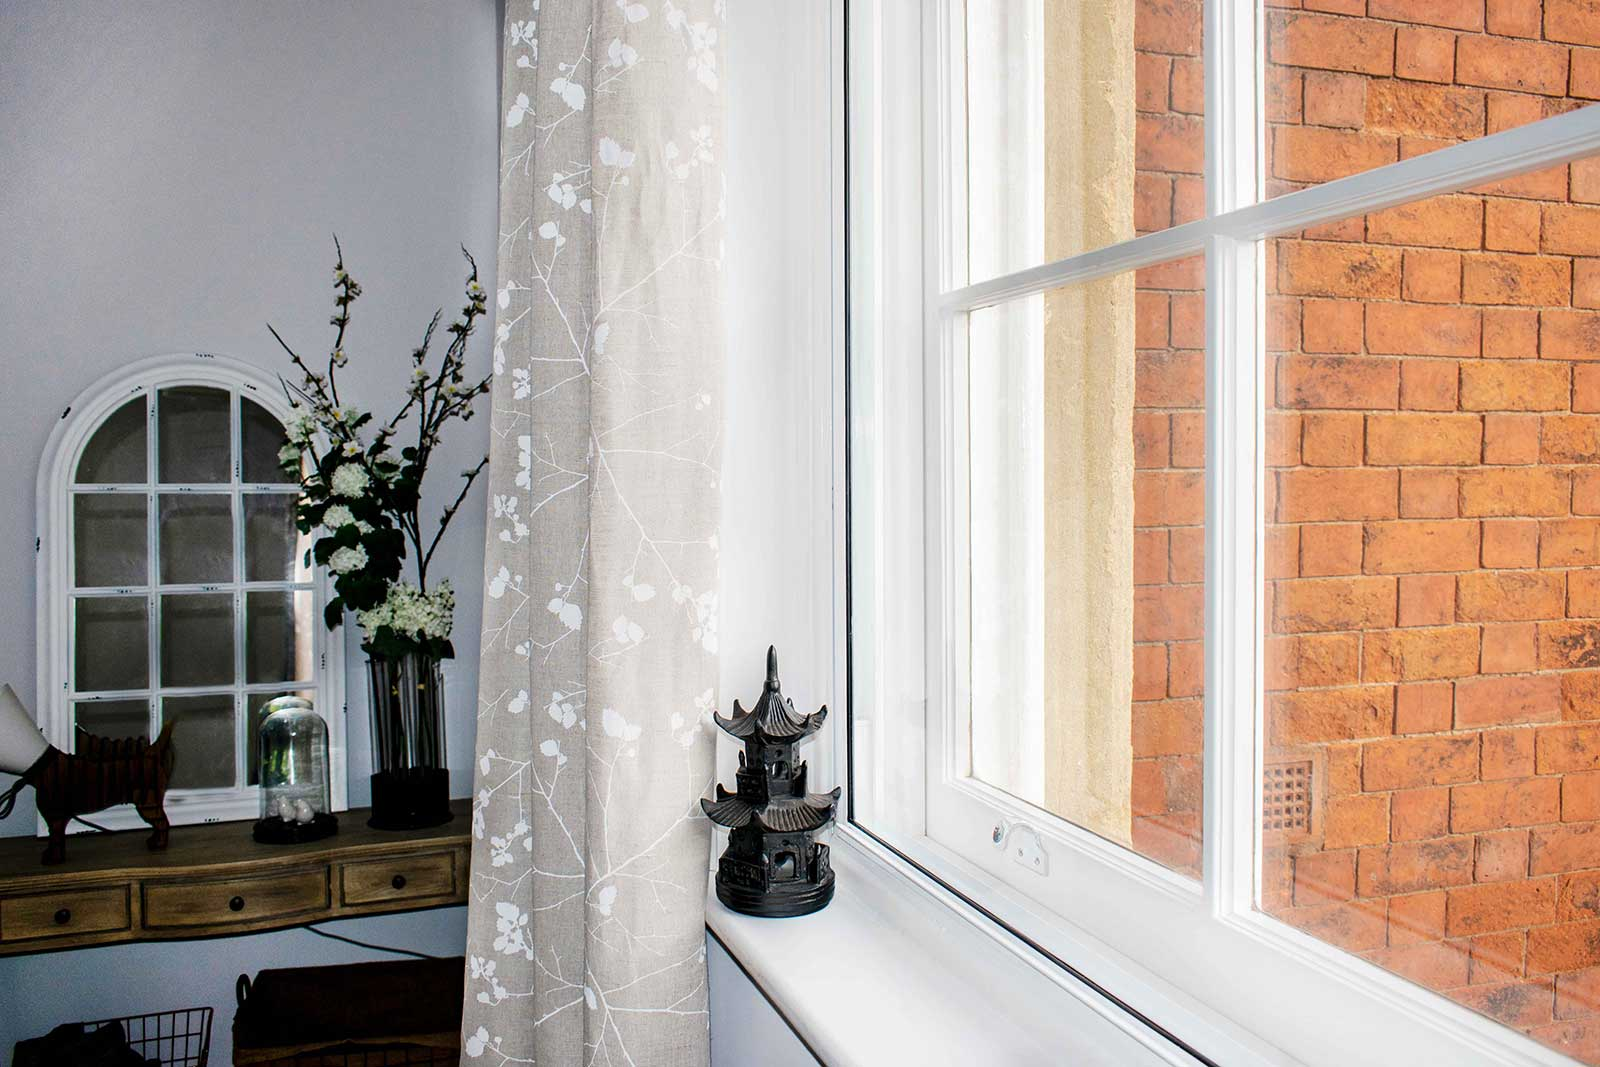 Secondary Glazing Cost Stoke Bishop